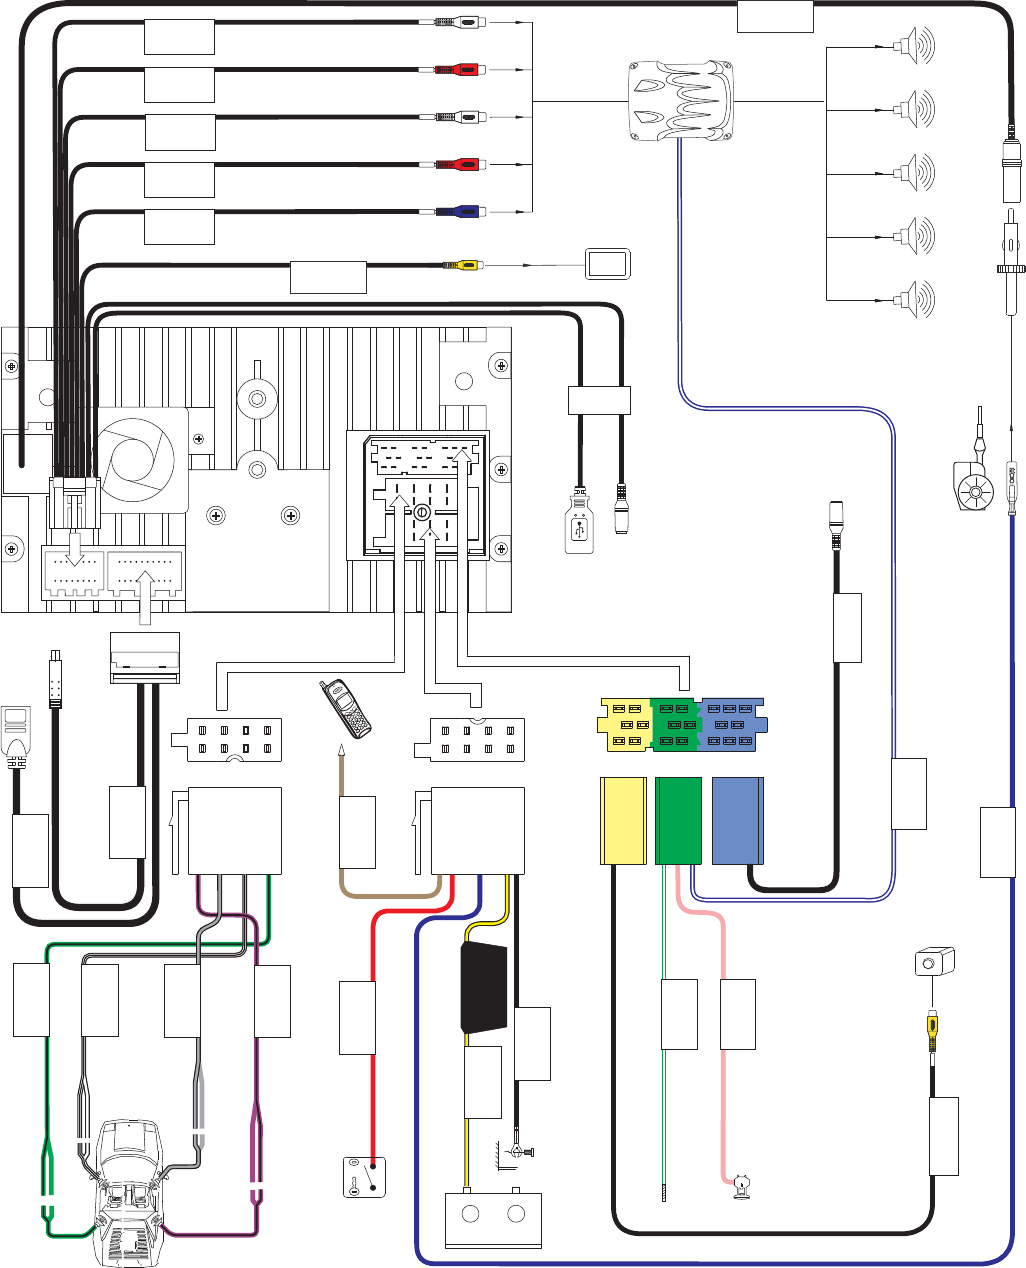 34fbcac4 7bef 4eb8 b34c 690a937048d0 bg4 jensen wiring diagram jensen vm9215bt update \u2022 wiring diagrams j jensen wiring harness diagram at n-0.co